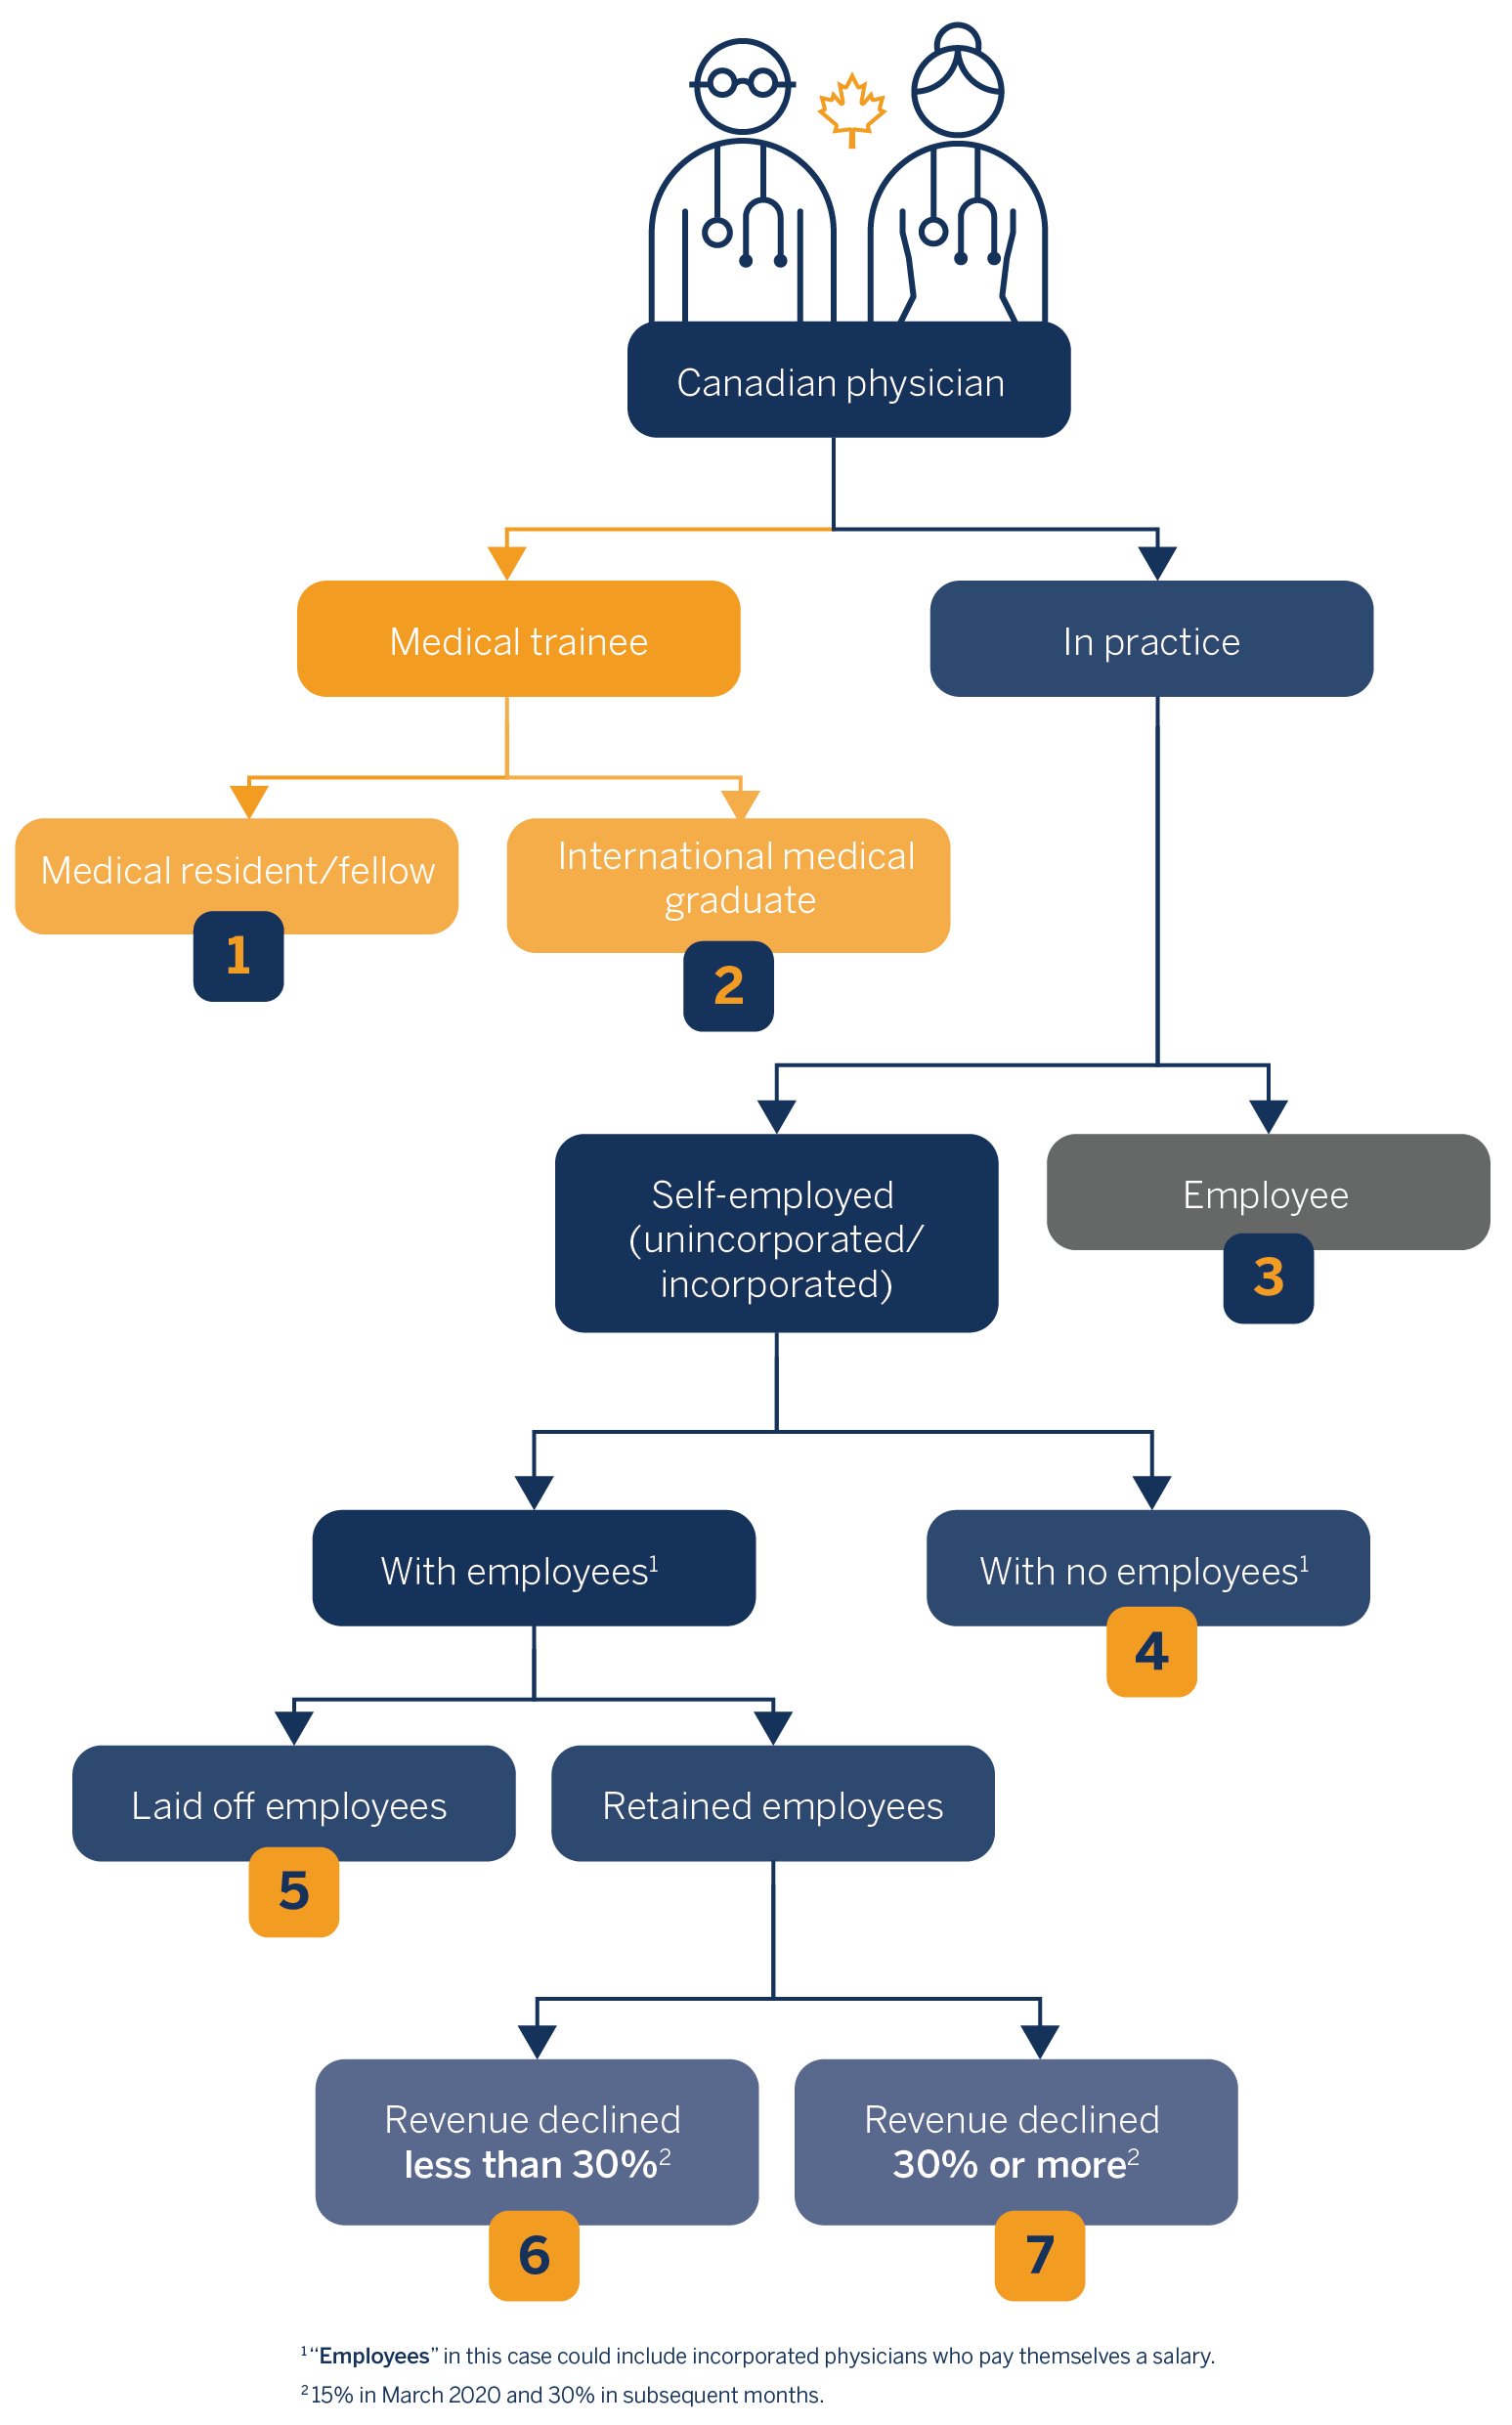 This flow chart shows the different scenarios for Canadian physicians. It first branches out to medical trainee and in-practice. From in-practice, it branches out to self-employed (unincorporated and incorporated) and employee, and so on.